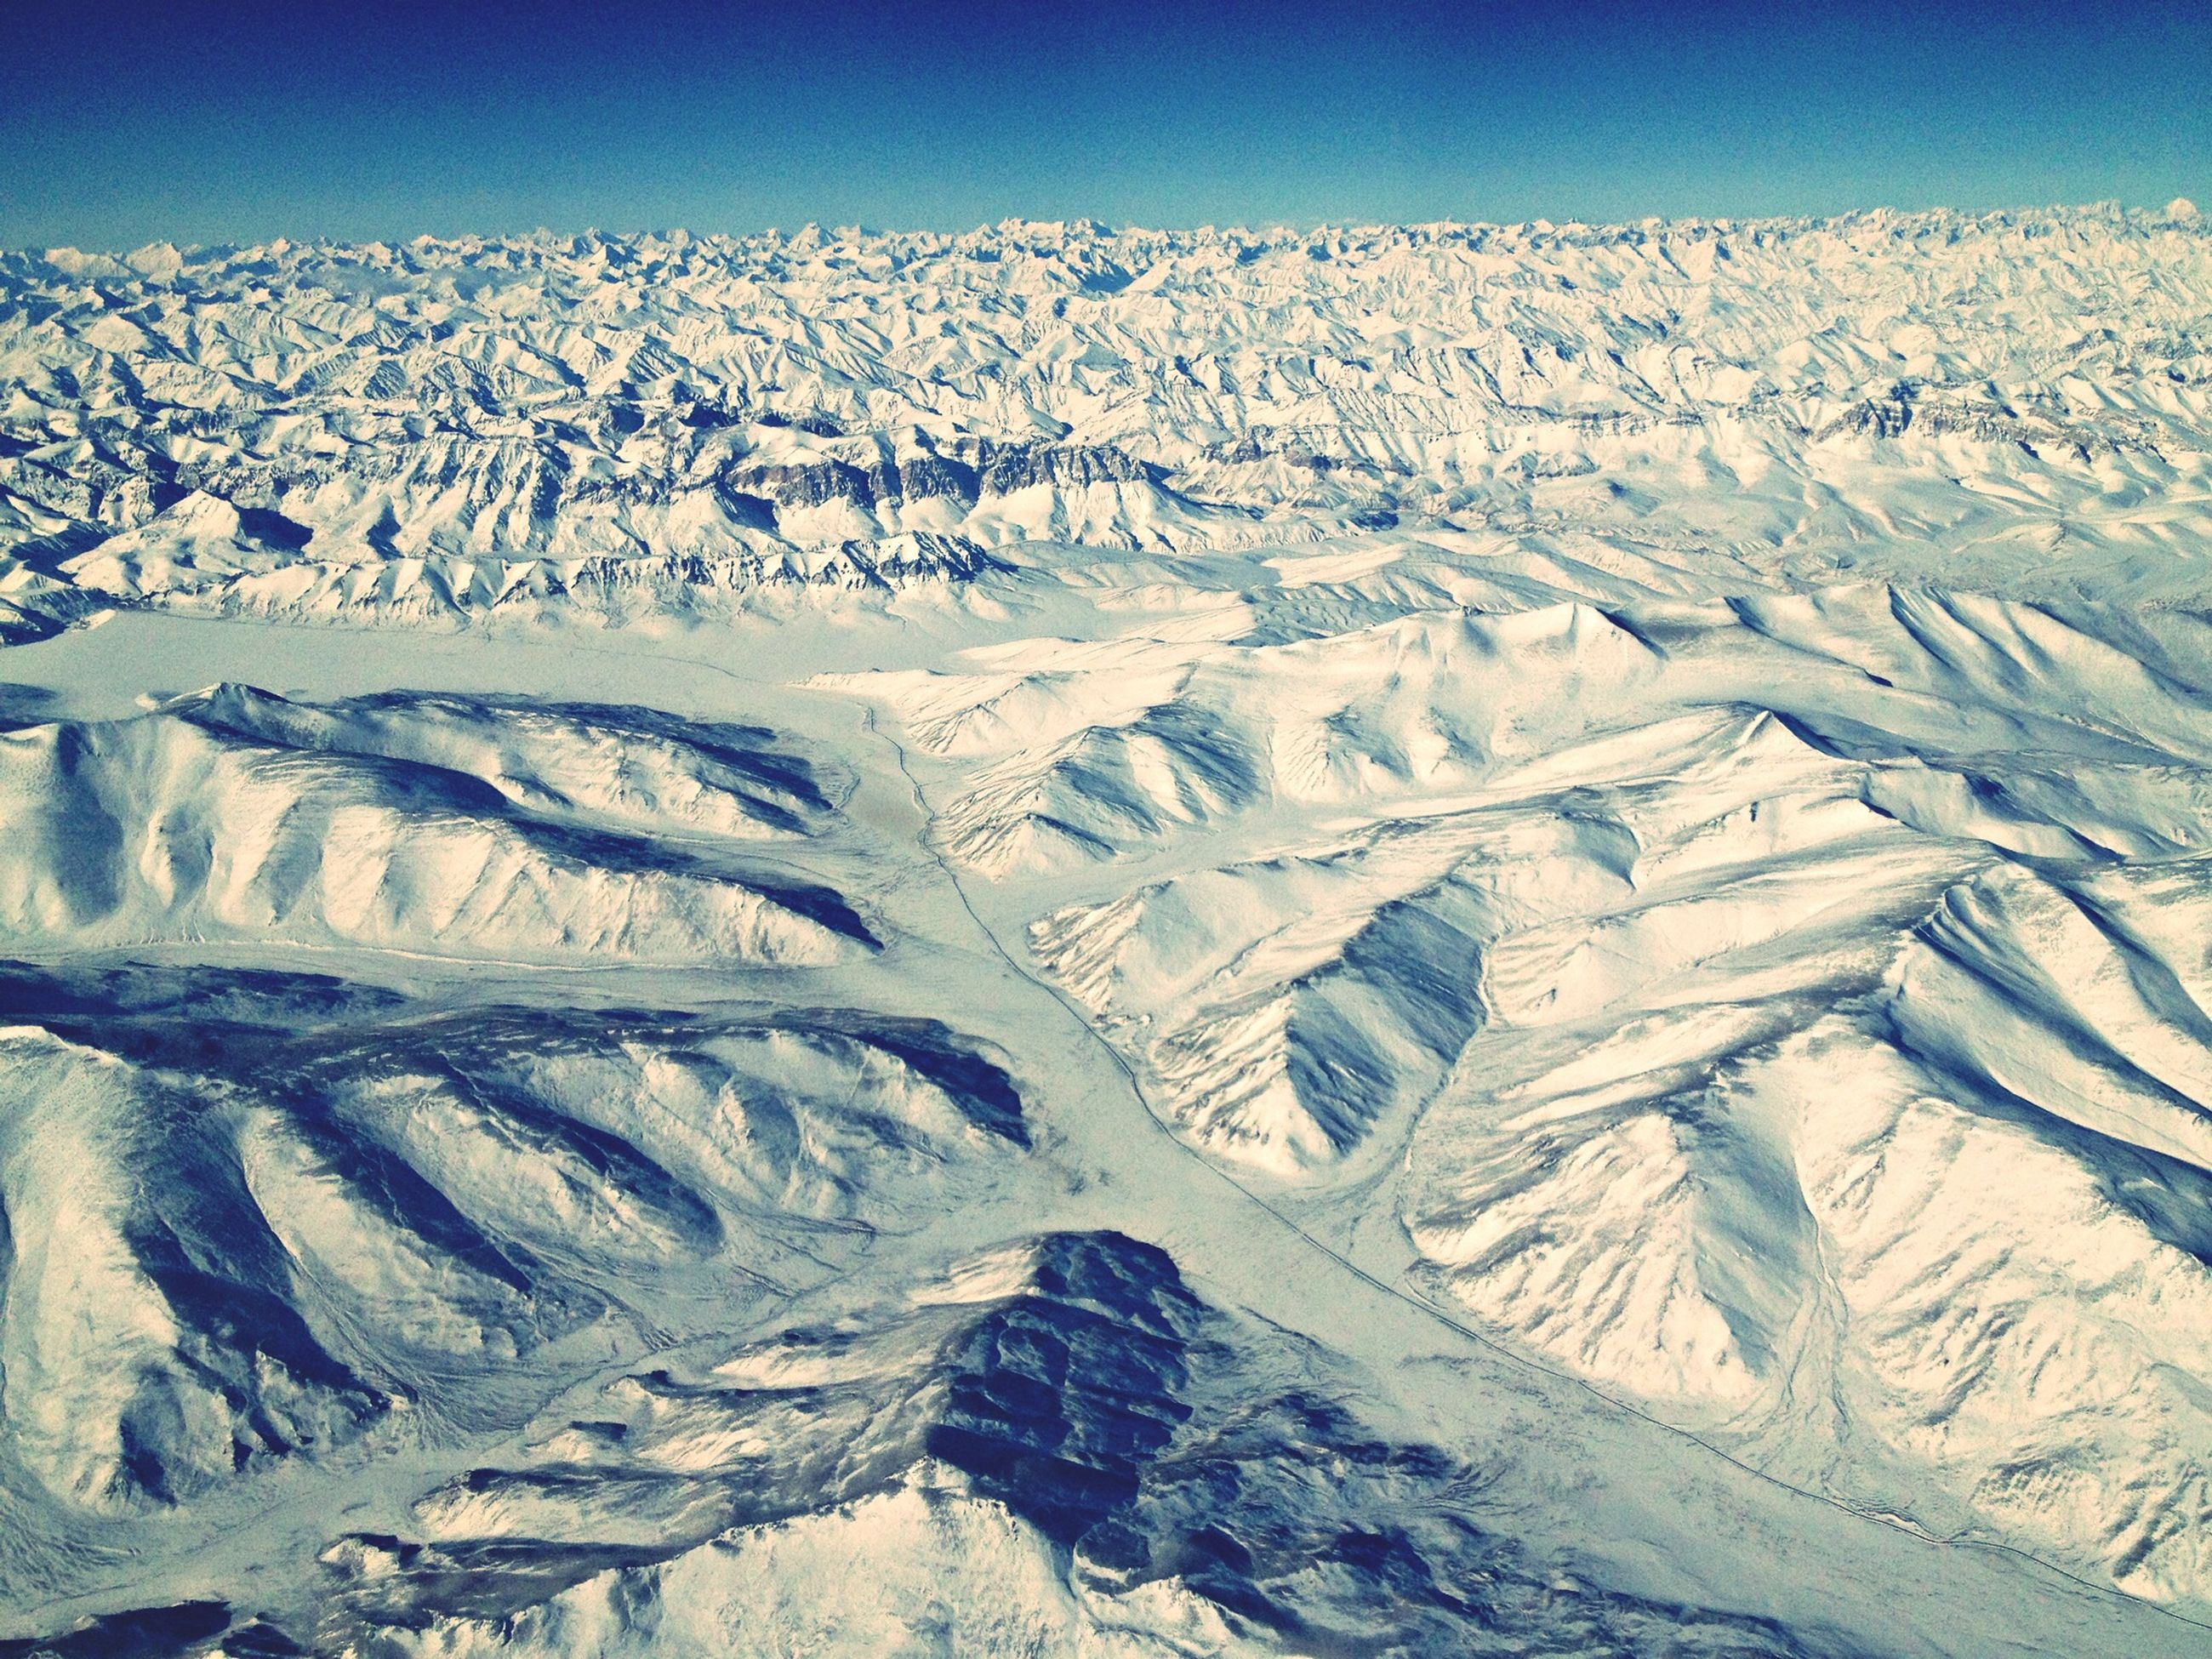 snow, winter, cold temperature, landscape, season, tranquility, tranquil scene, scenics, beauty in nature, nature, blue, mountain, clear sky, snowcapped mountain, covering, weather, white color, aerial view, mountain range, non-urban scene